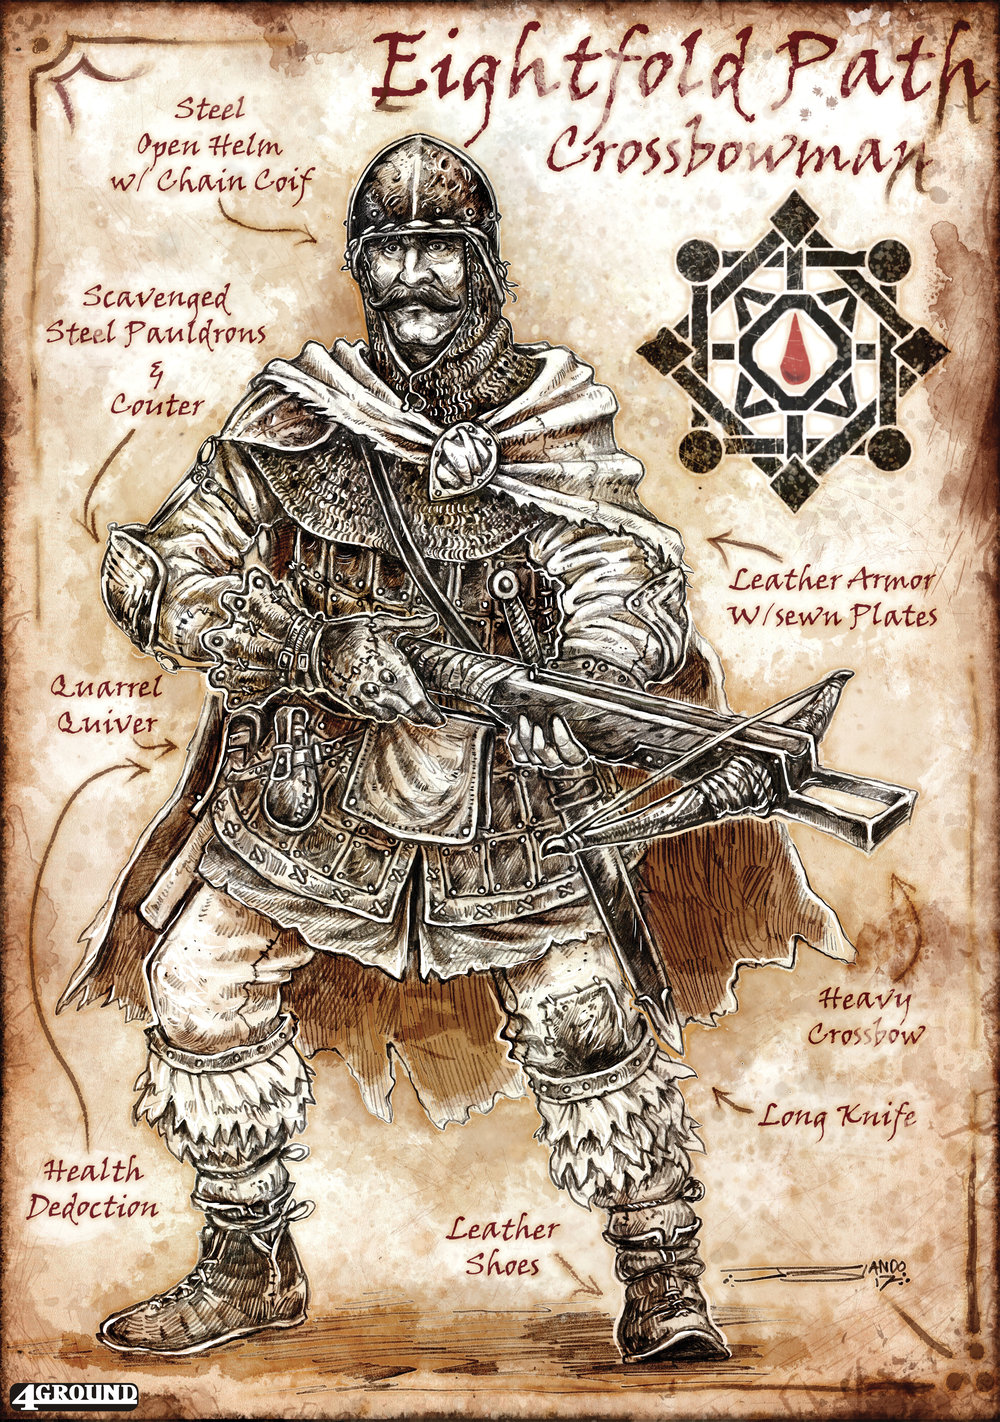 Eightfold Path Faction : Crossbowman